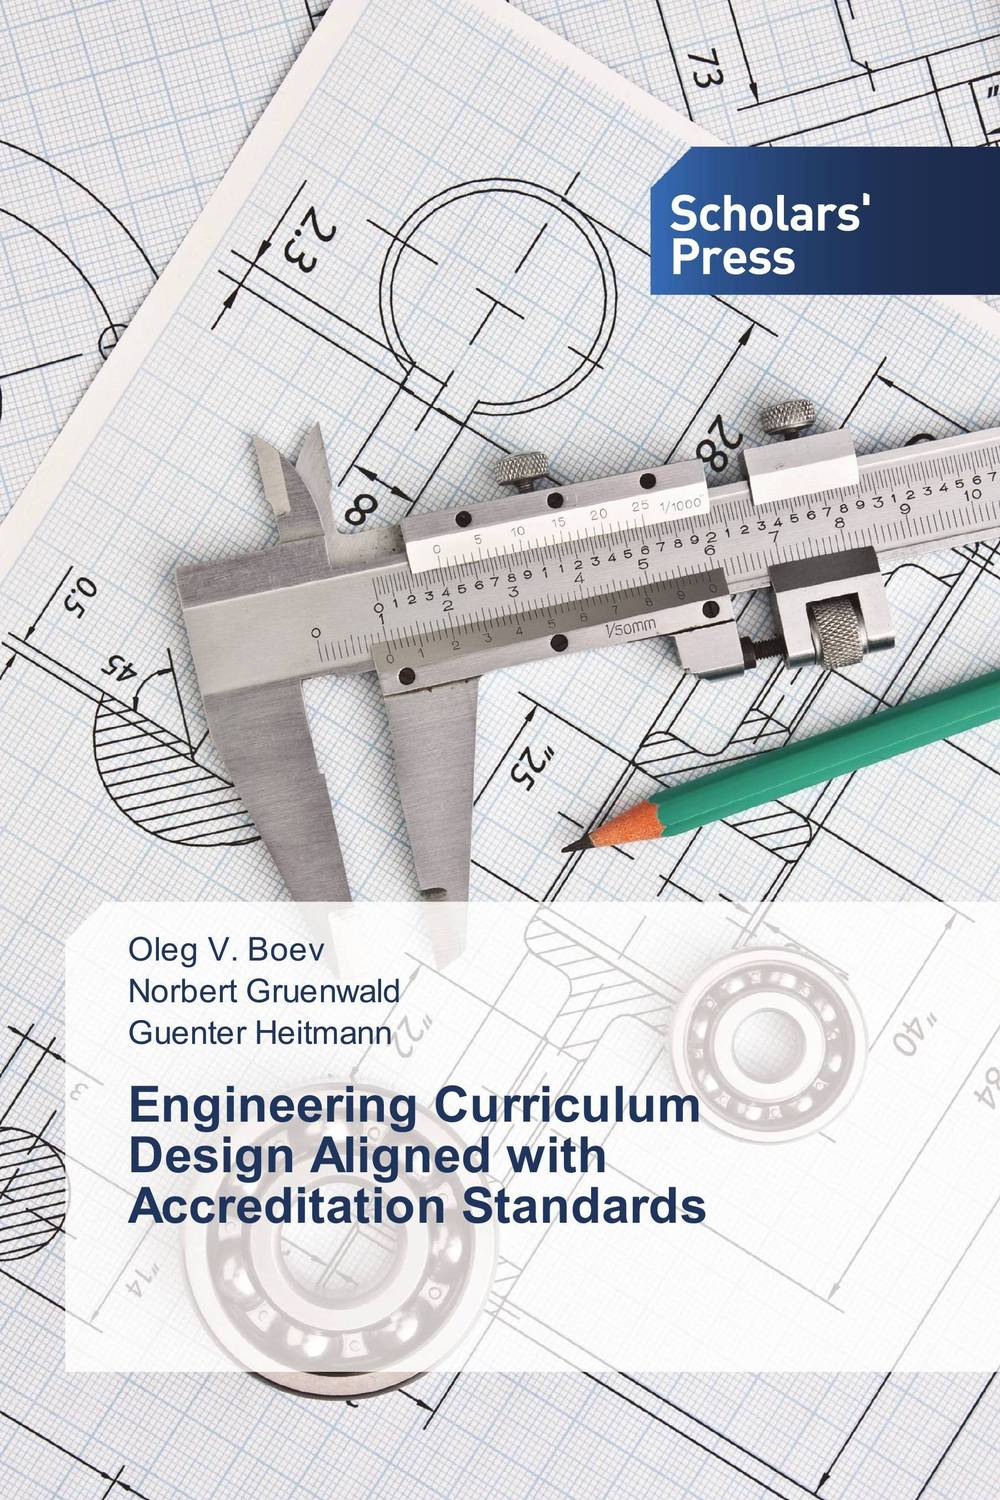 Engineering Curriculum Design Aligned with Accreditation Standards